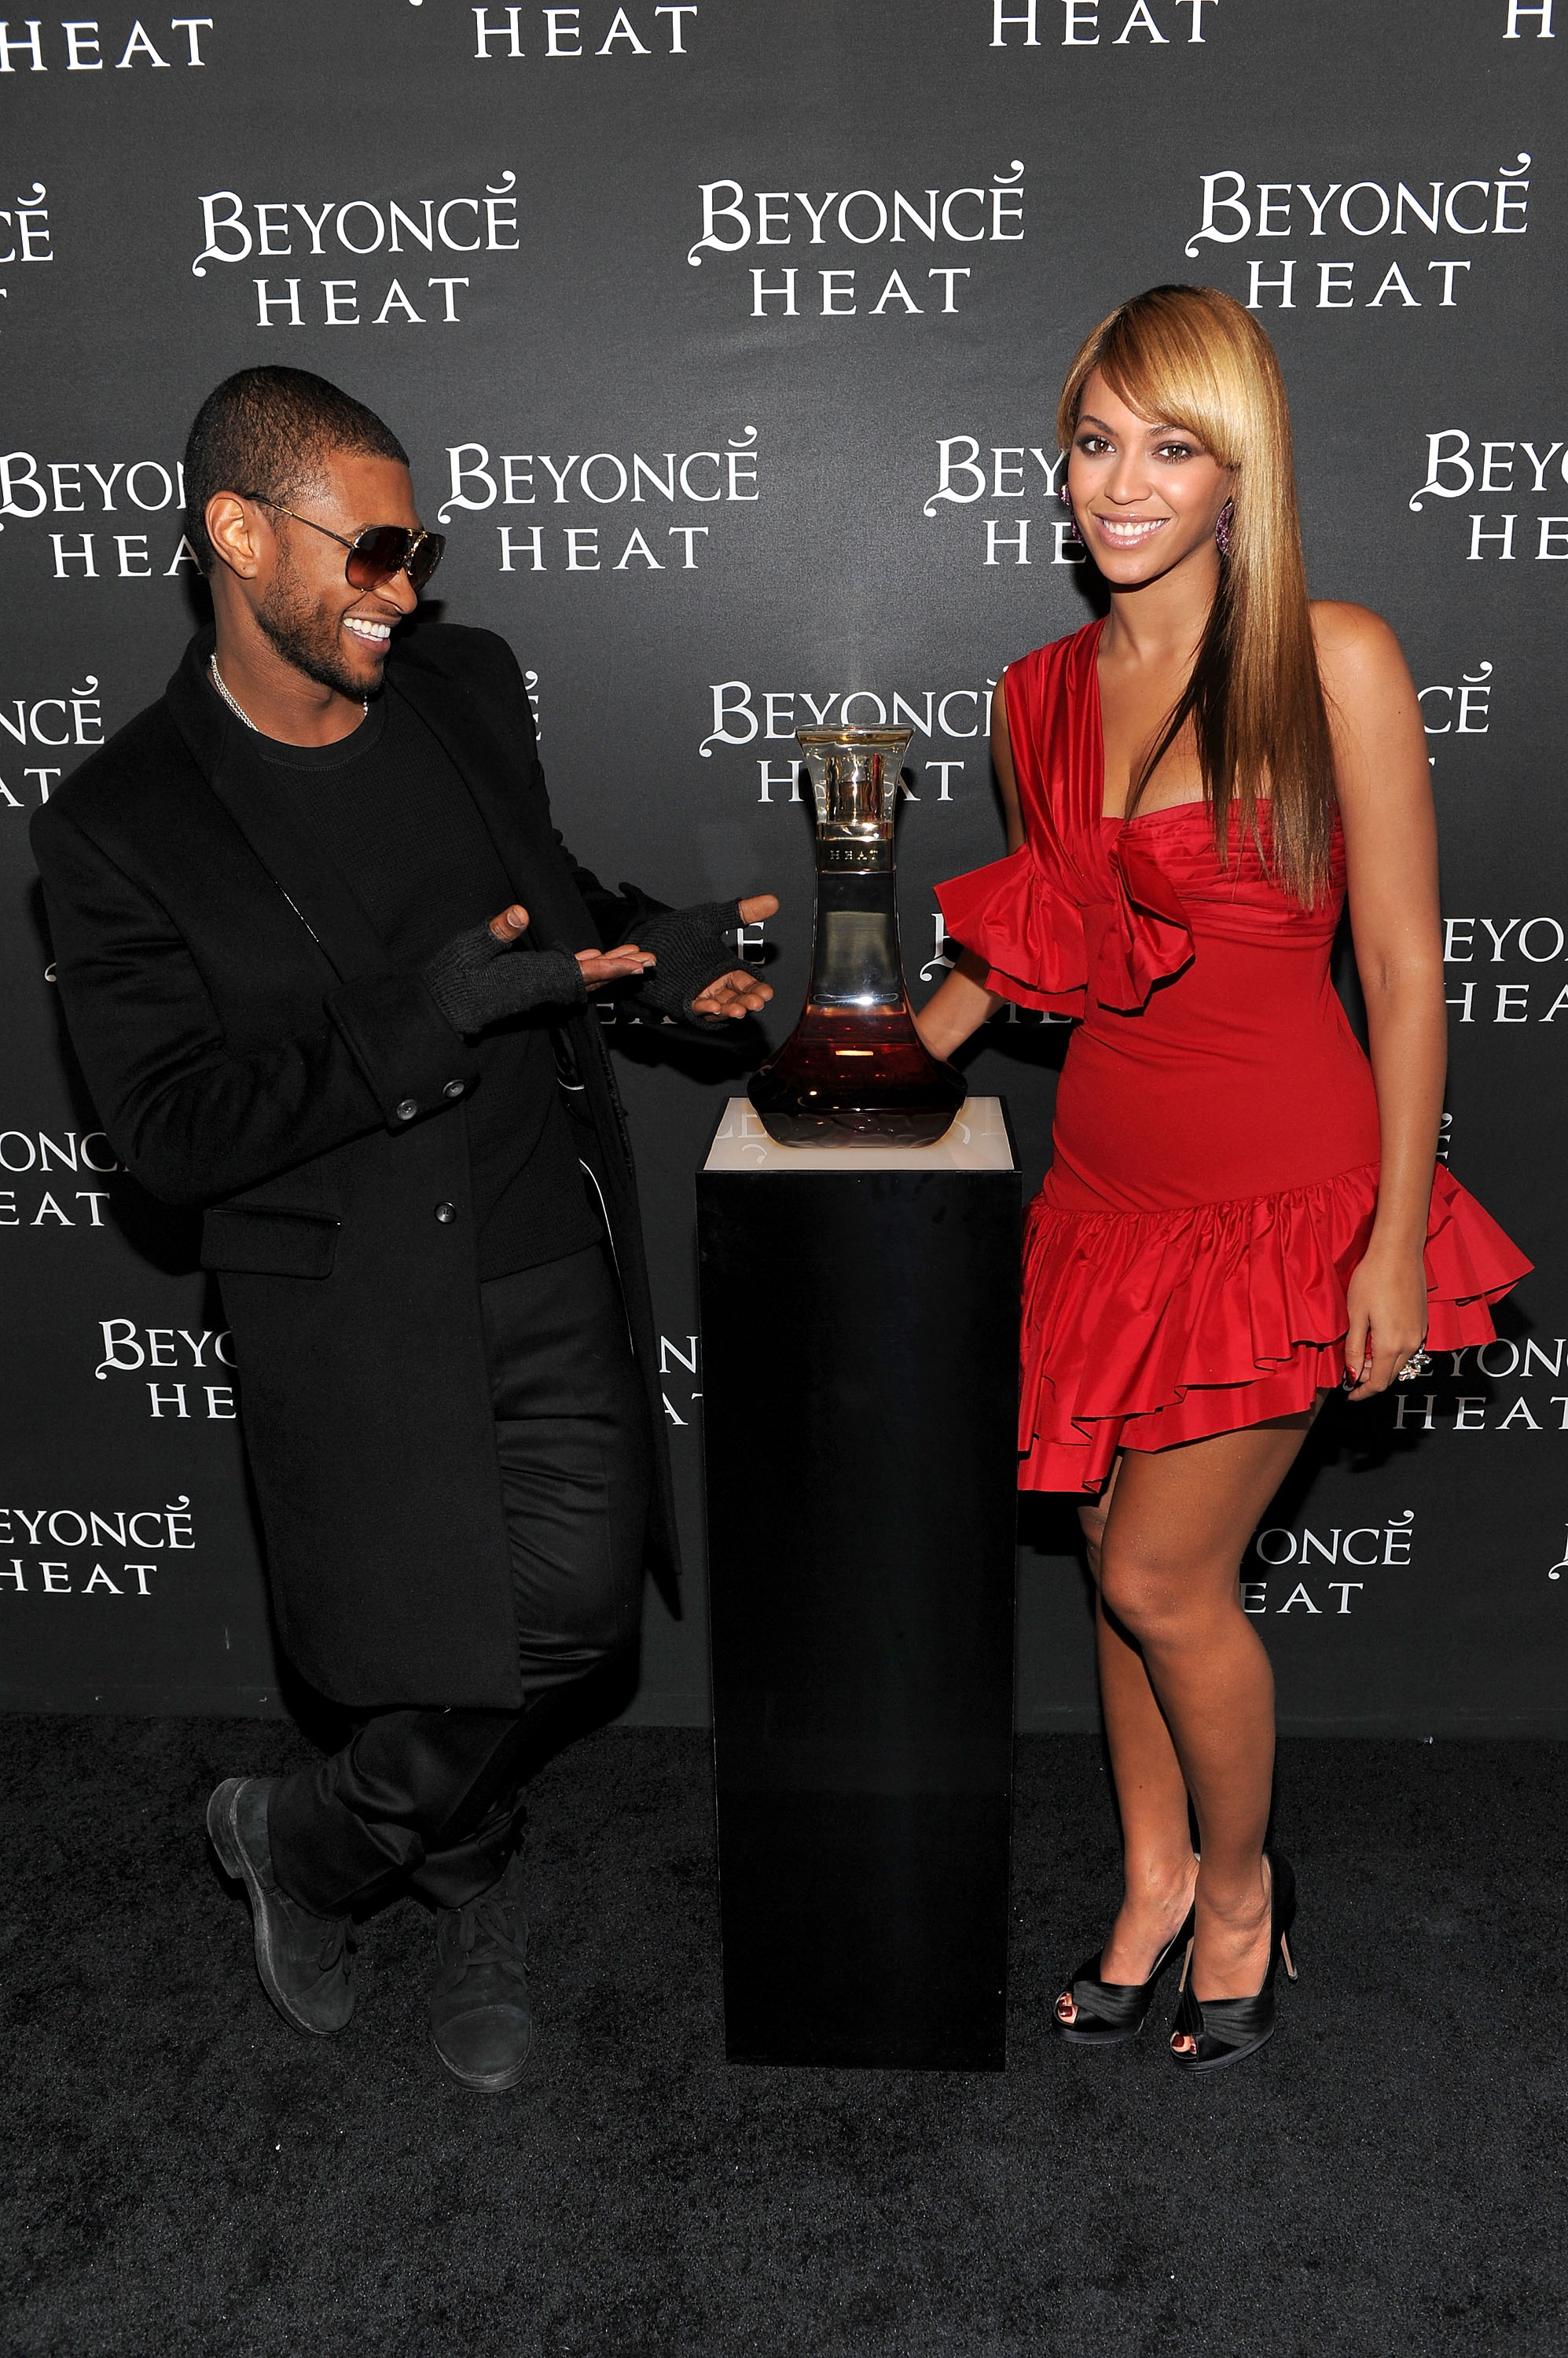 05347_beyonce-heat-launch-party-5_122_580lo.jpg